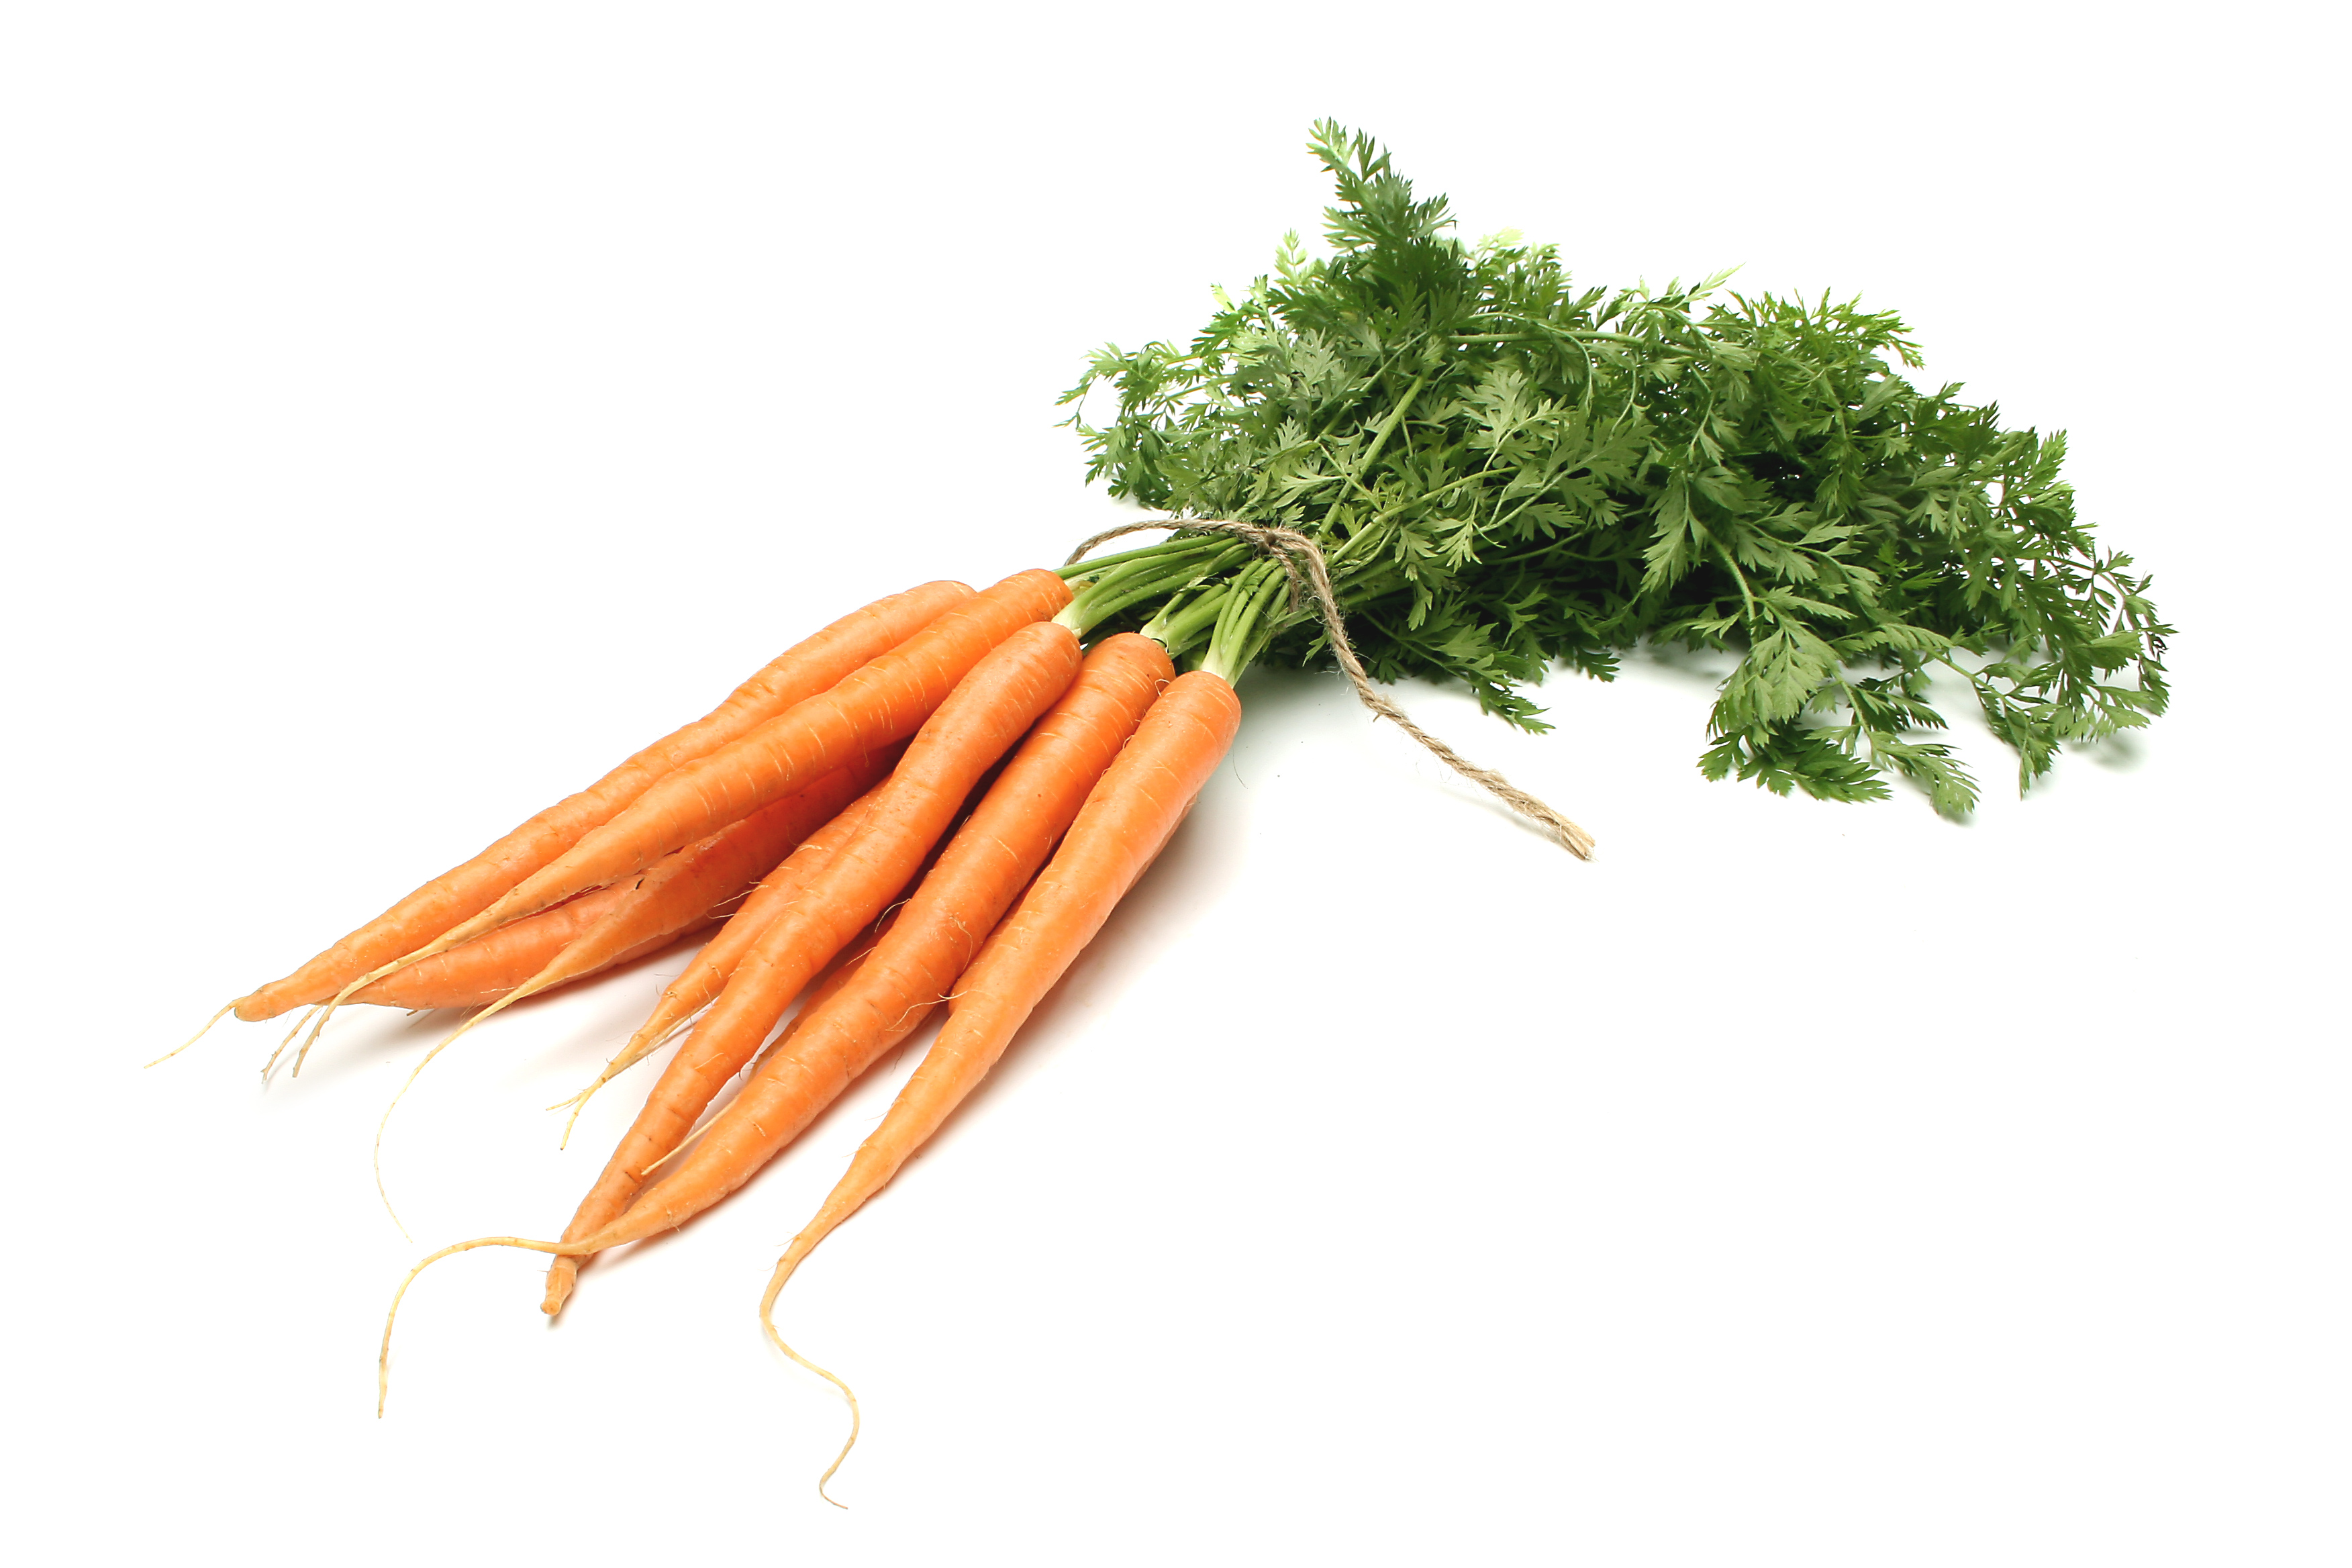 Carrots - Health Benefits And Nutrition Facts - Healthy ...